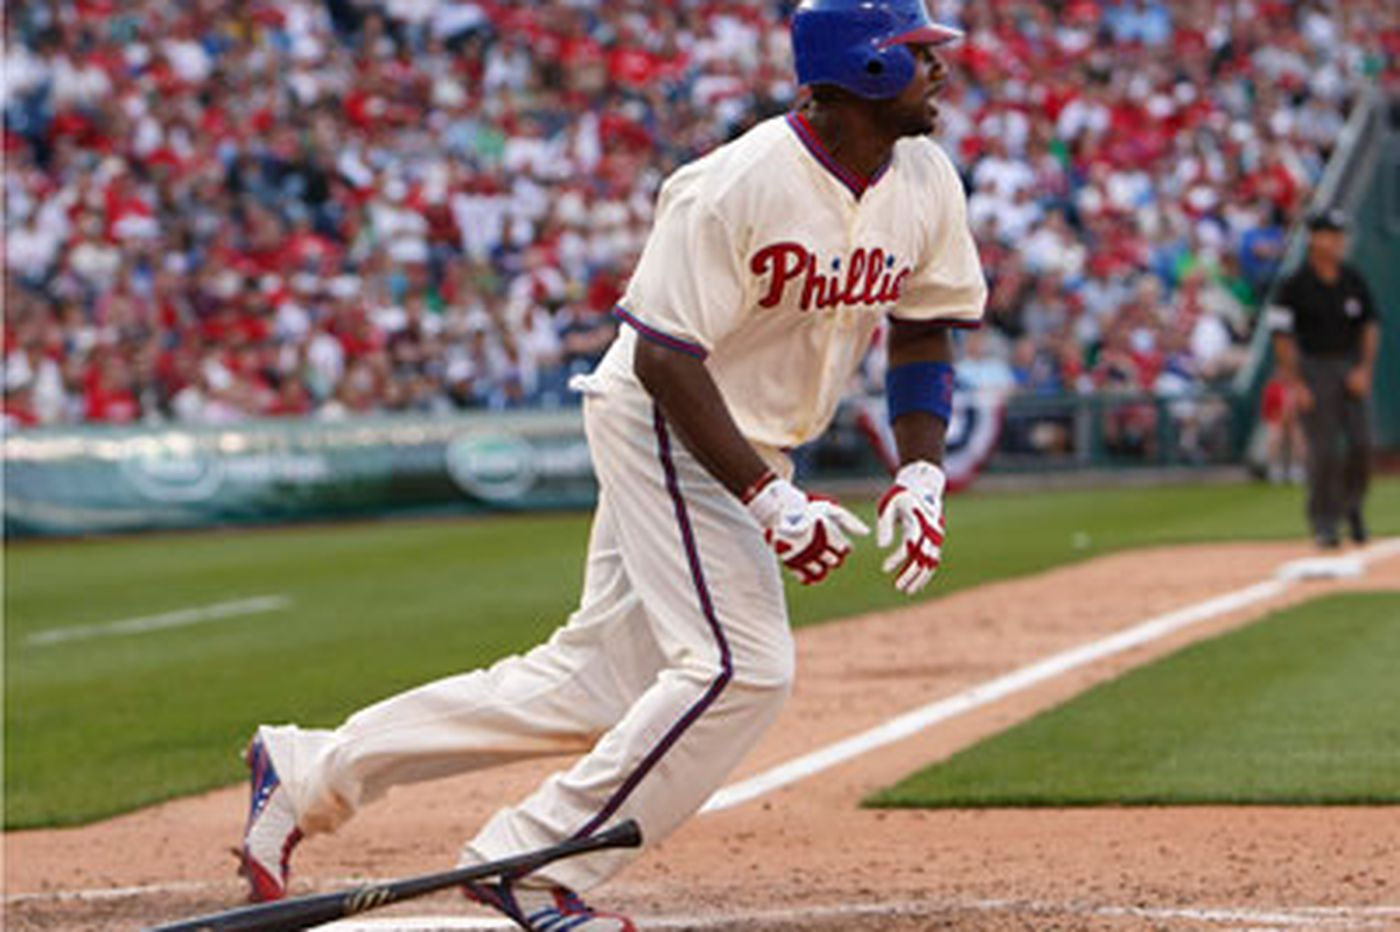 Phillies' Howard worked on swing with Bonds in offseason